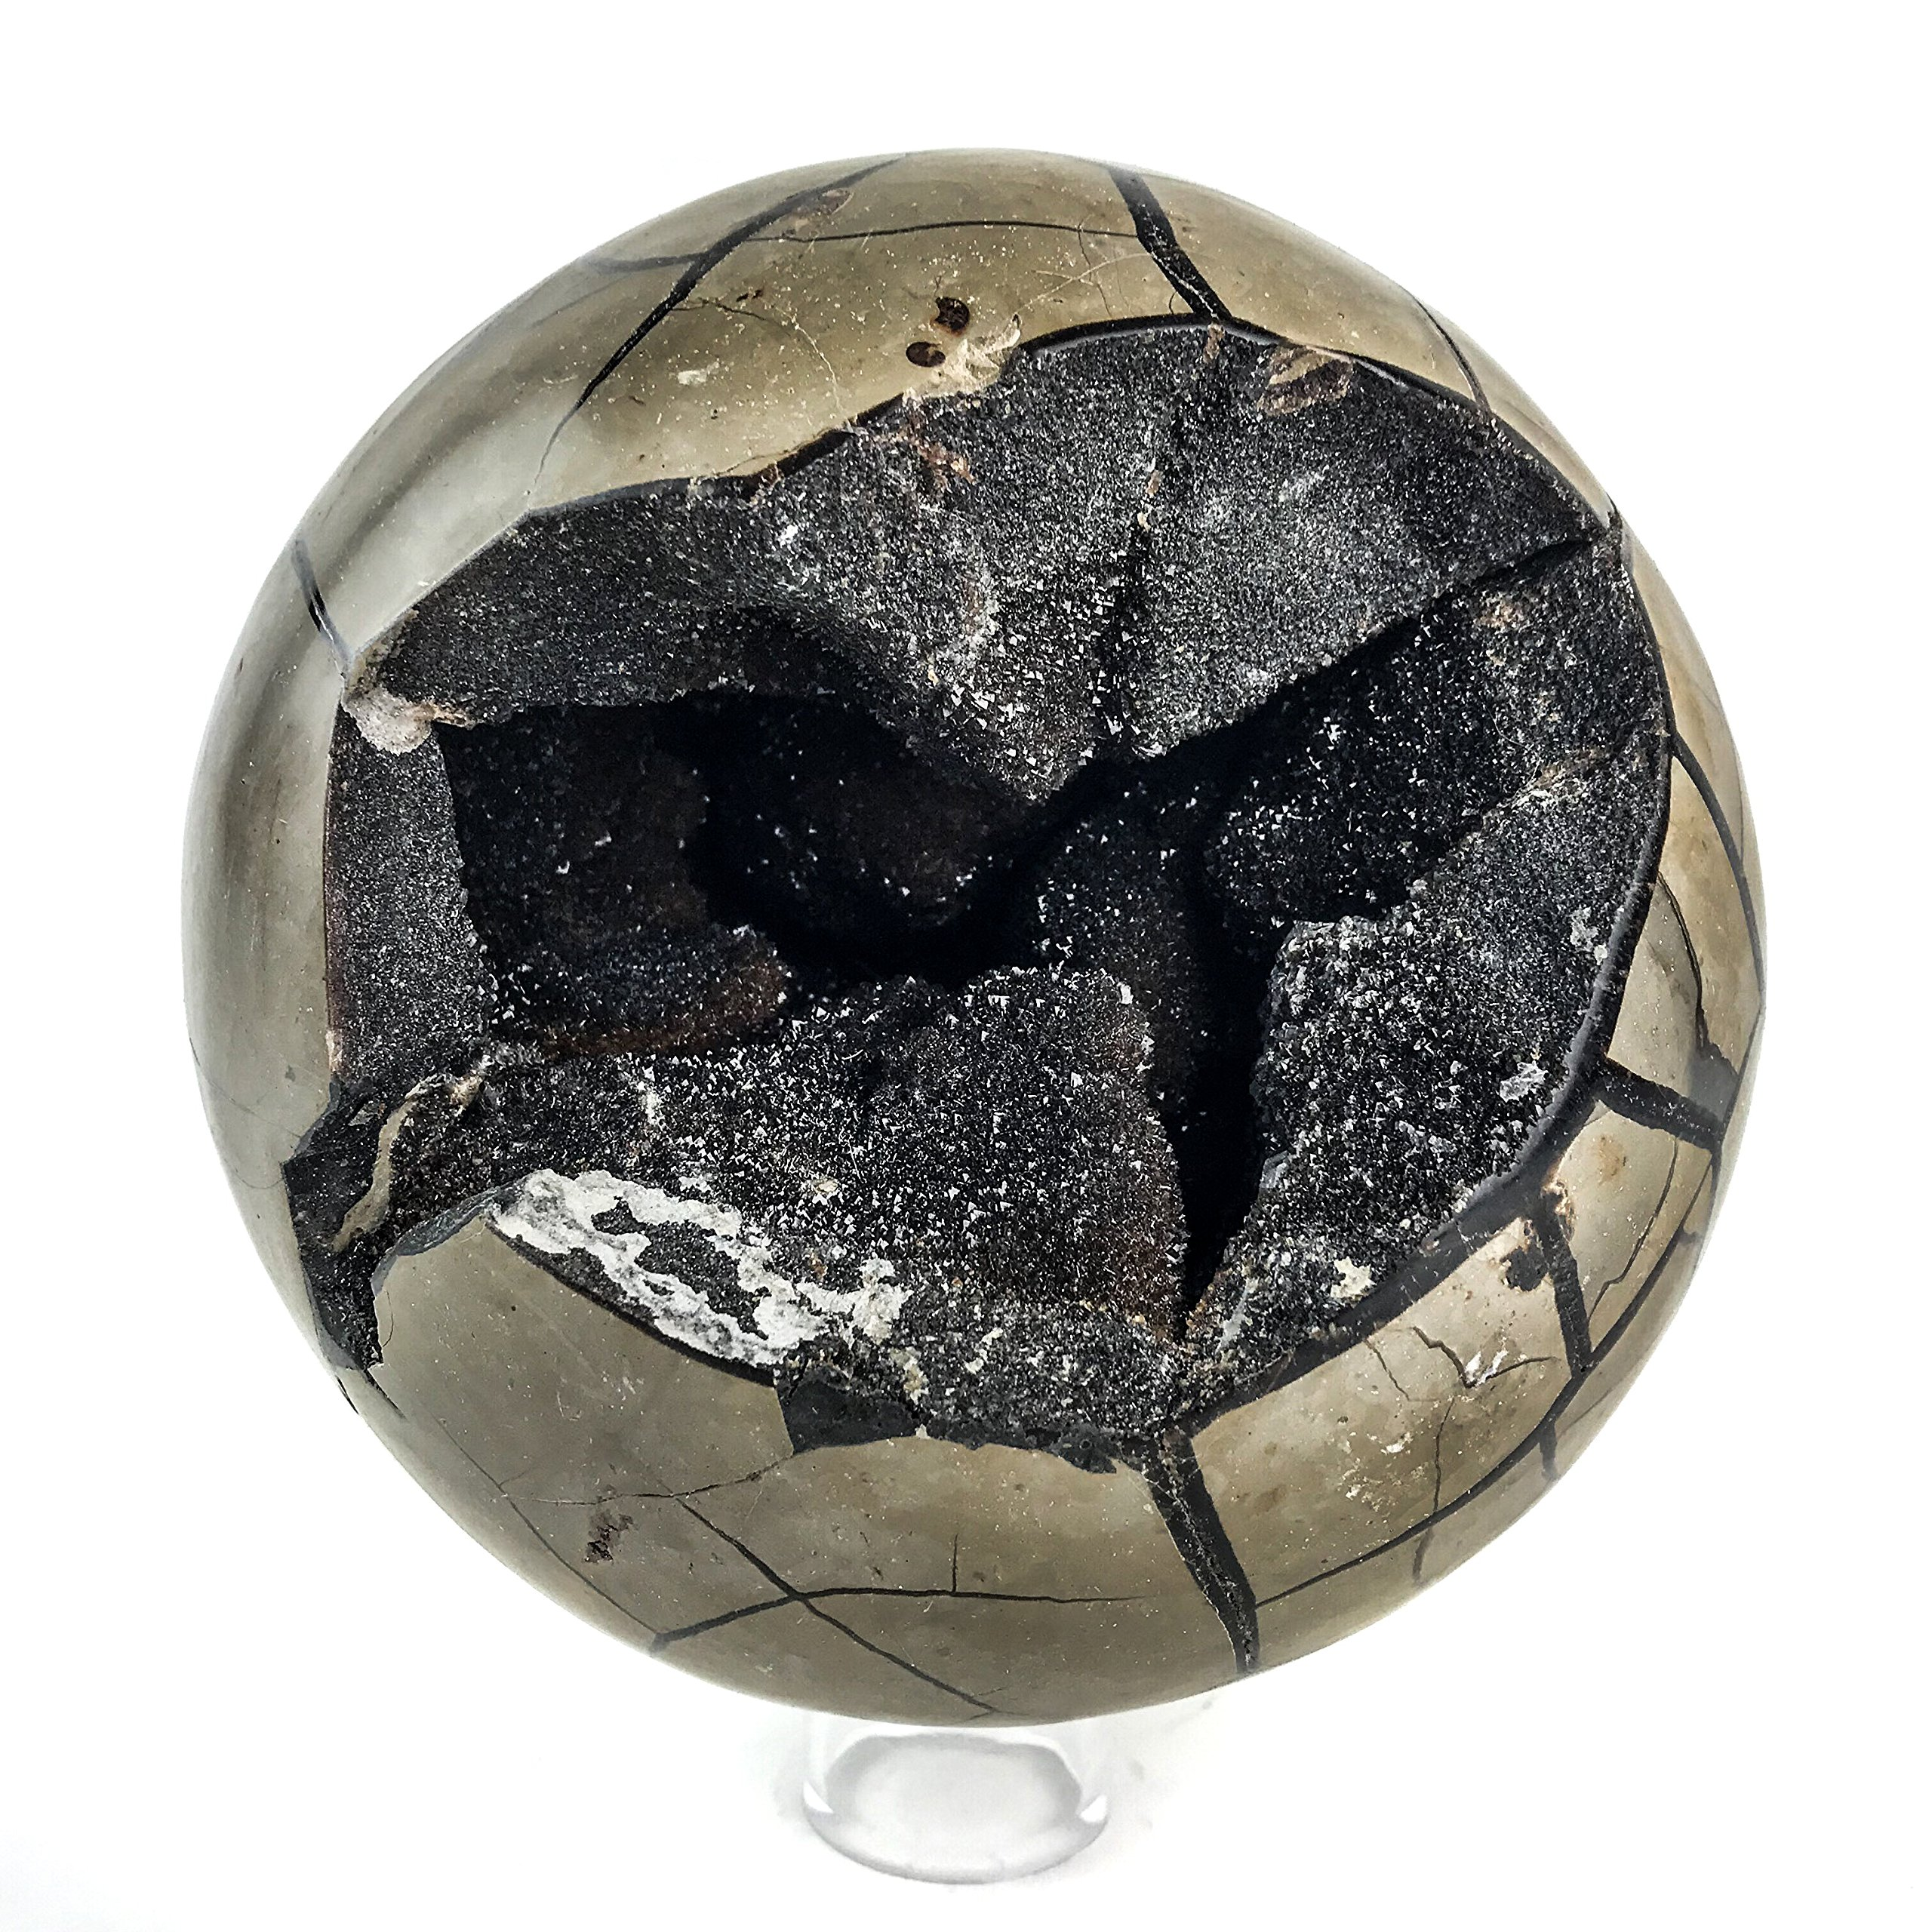 Astro Gallery Of Gems Polished Septarian Sphere from Madagascar (15 pounds)